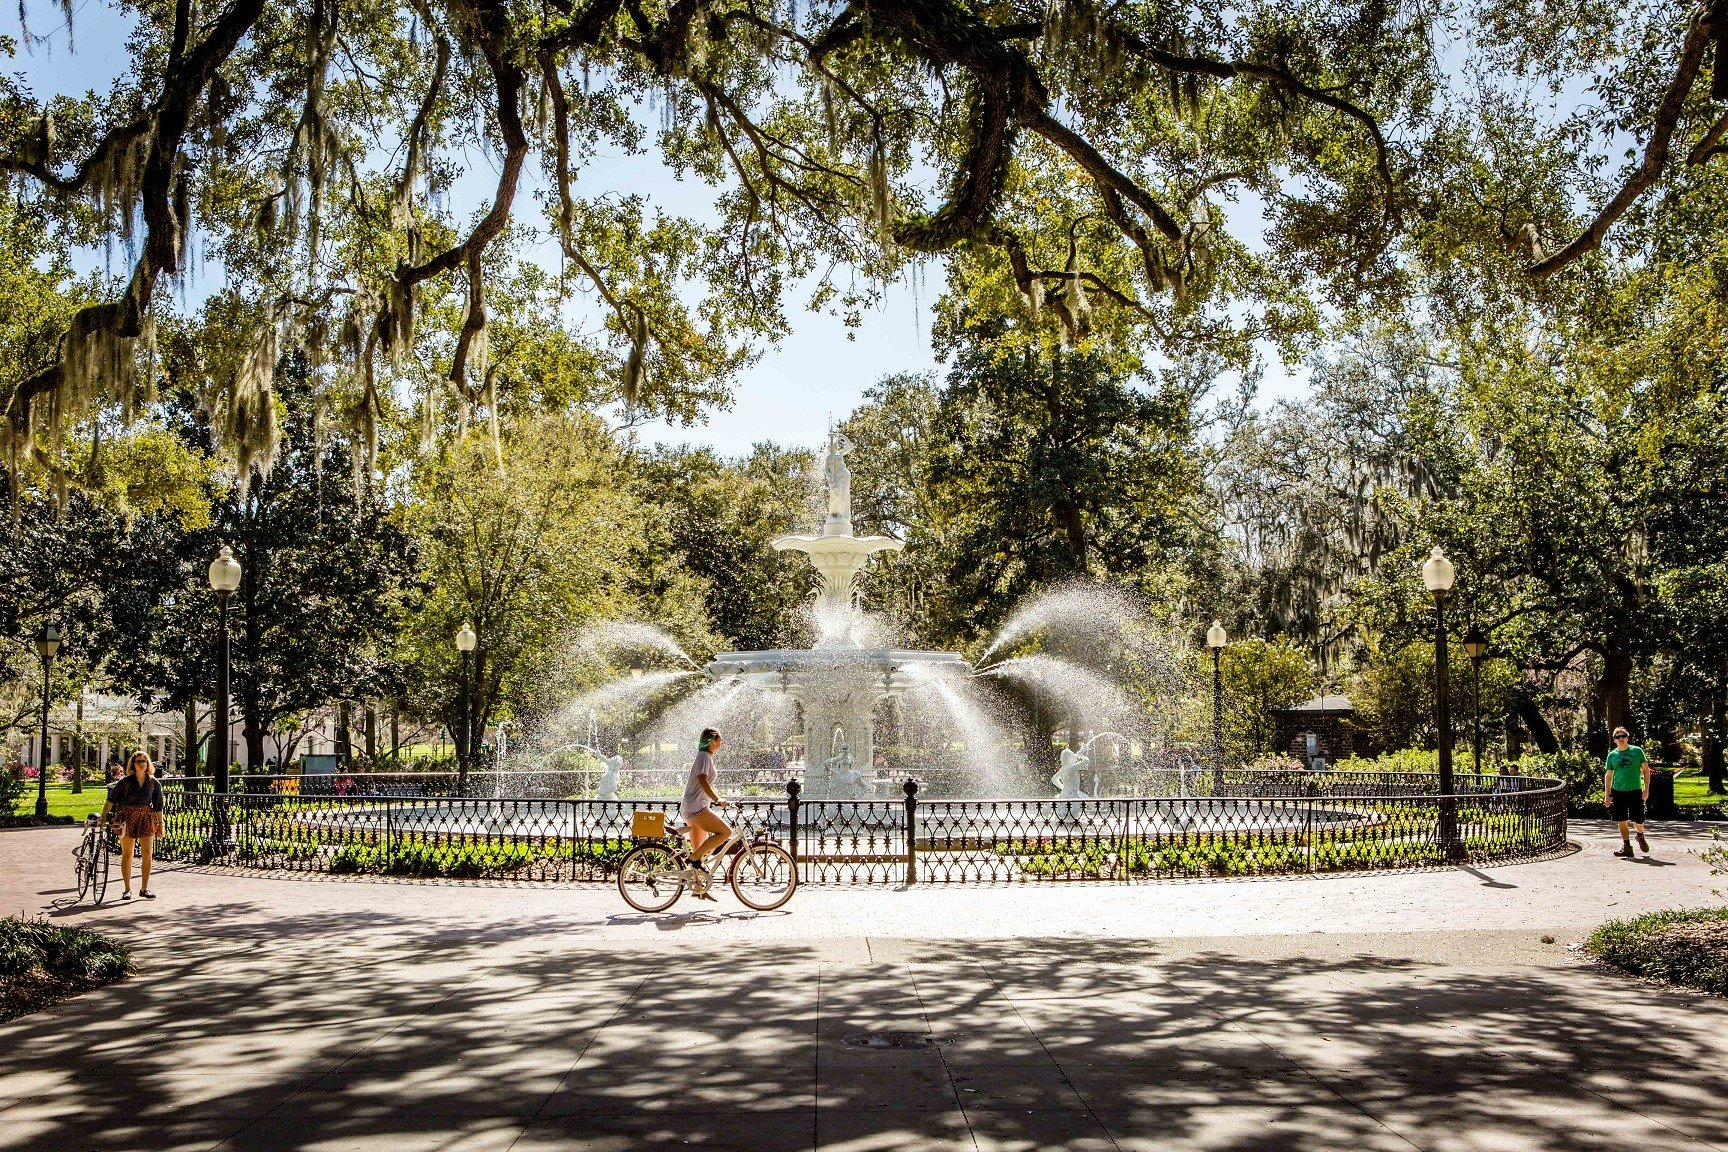 Hotels Trip Ideas Weekend Getaways tree outdoor plant plaza estate park town square Garden water feature